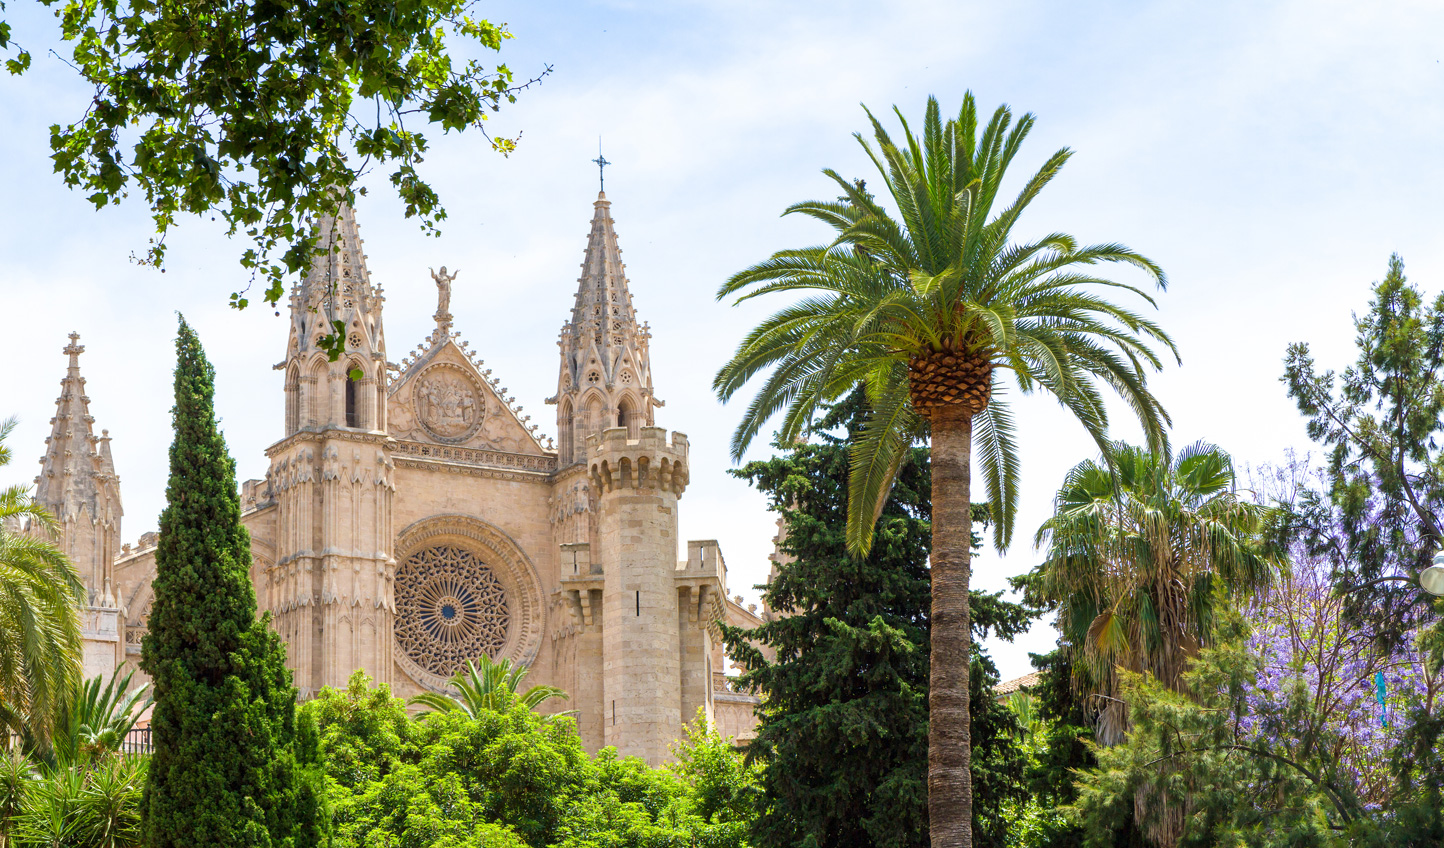 Stroll through the streets of Palma and take in the sights